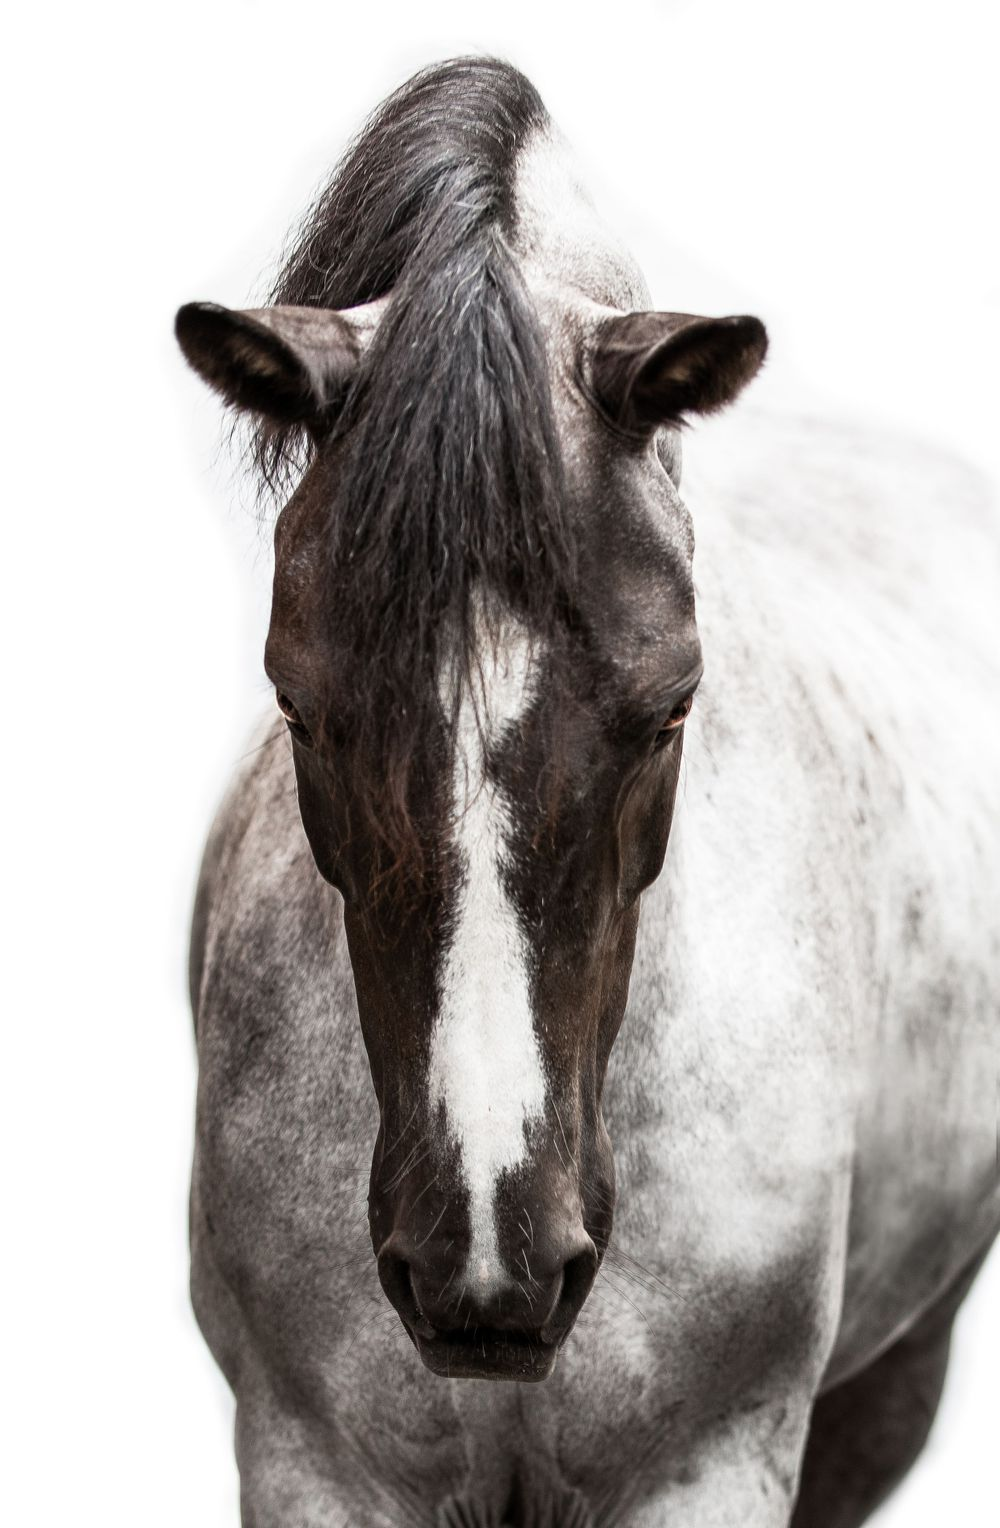 White Background Memorable And Artistic Es Equine Photography Evelyn Szczepanek